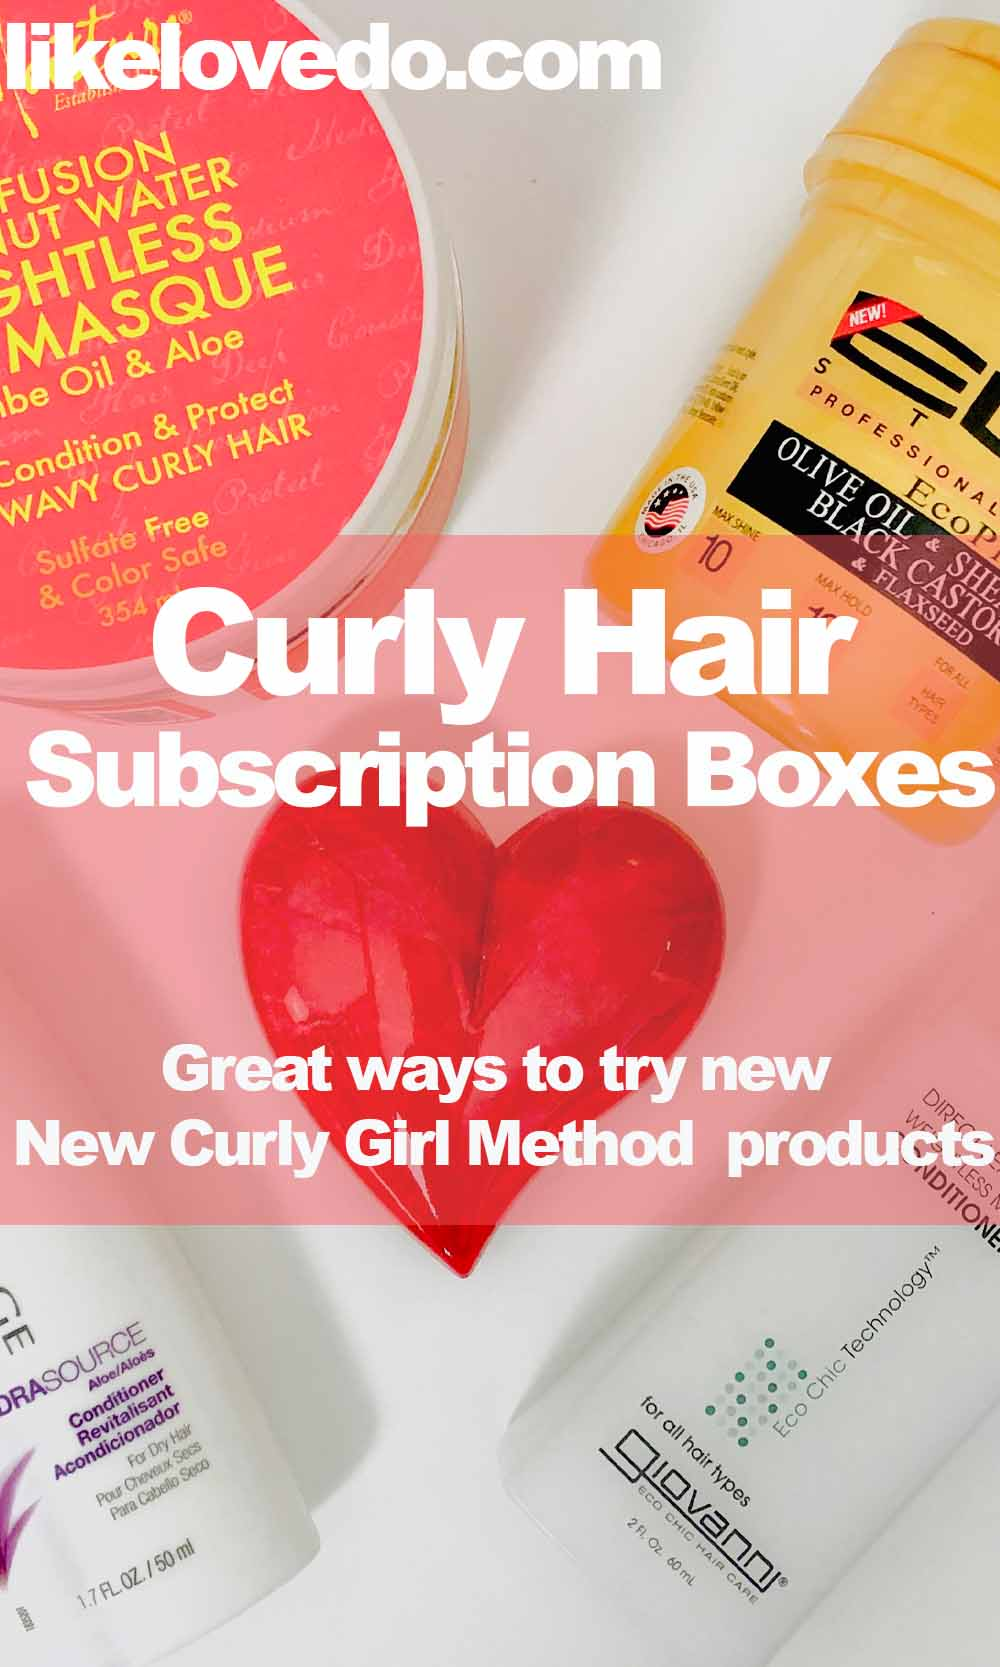 Curly girl method hair subscription boxes pin image